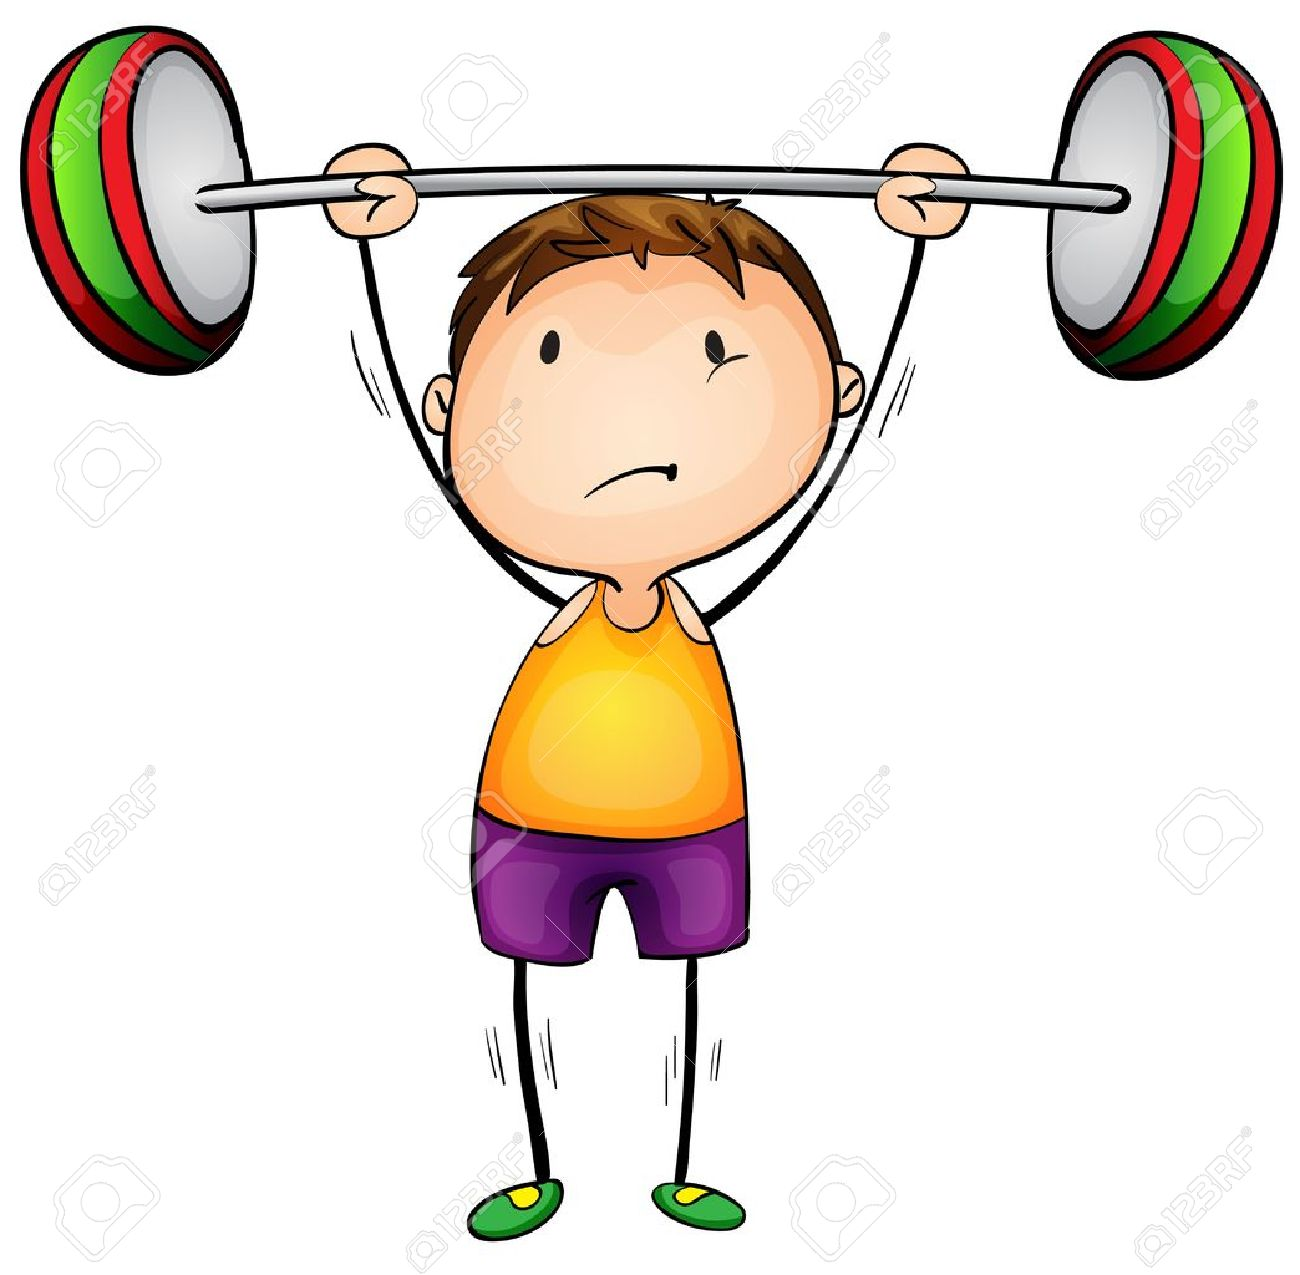 Illustration of a boy lifting weights.